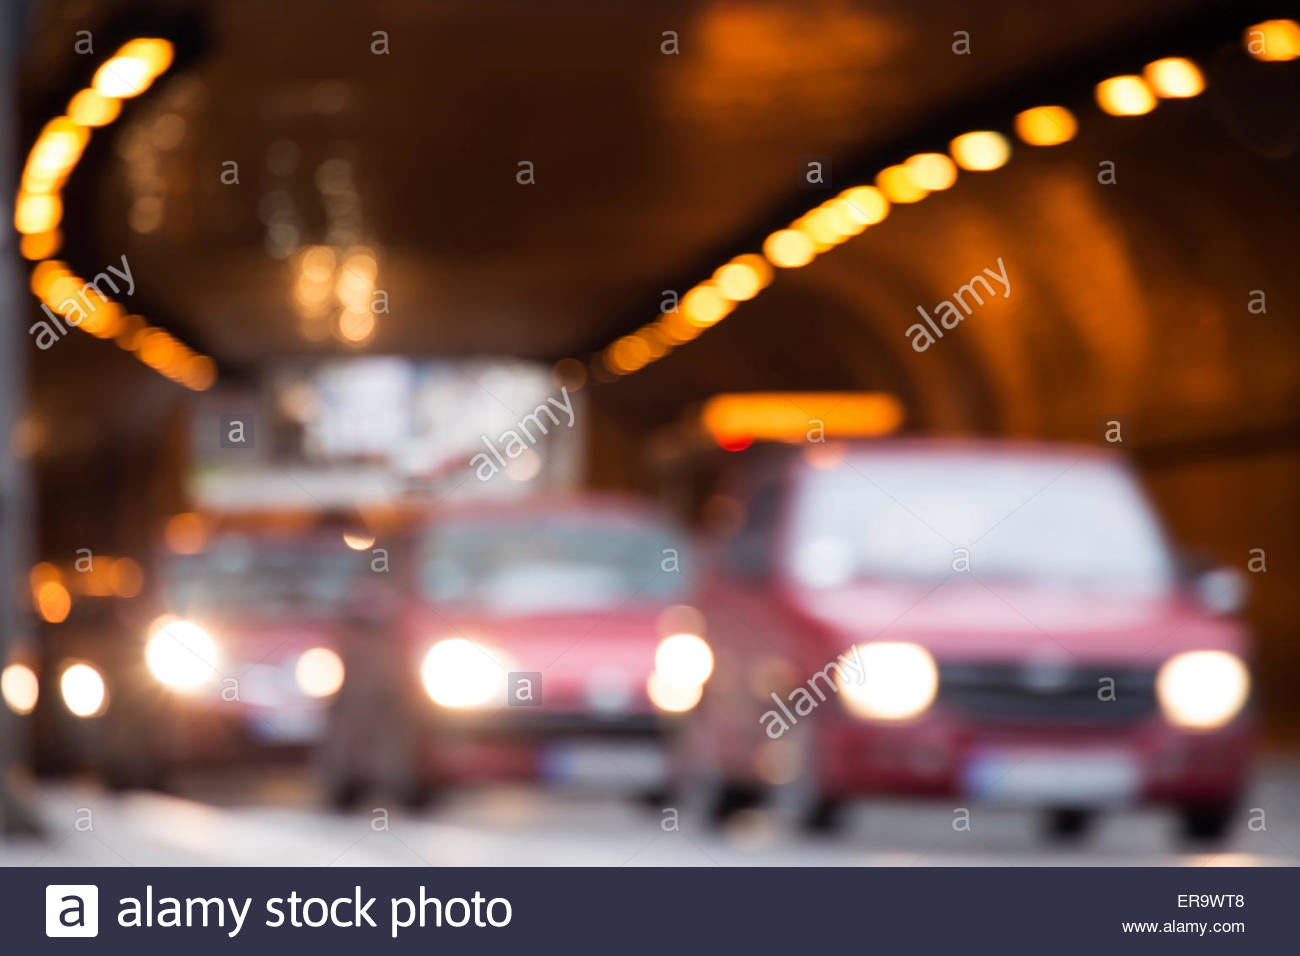 Traffic lights - Stock Image